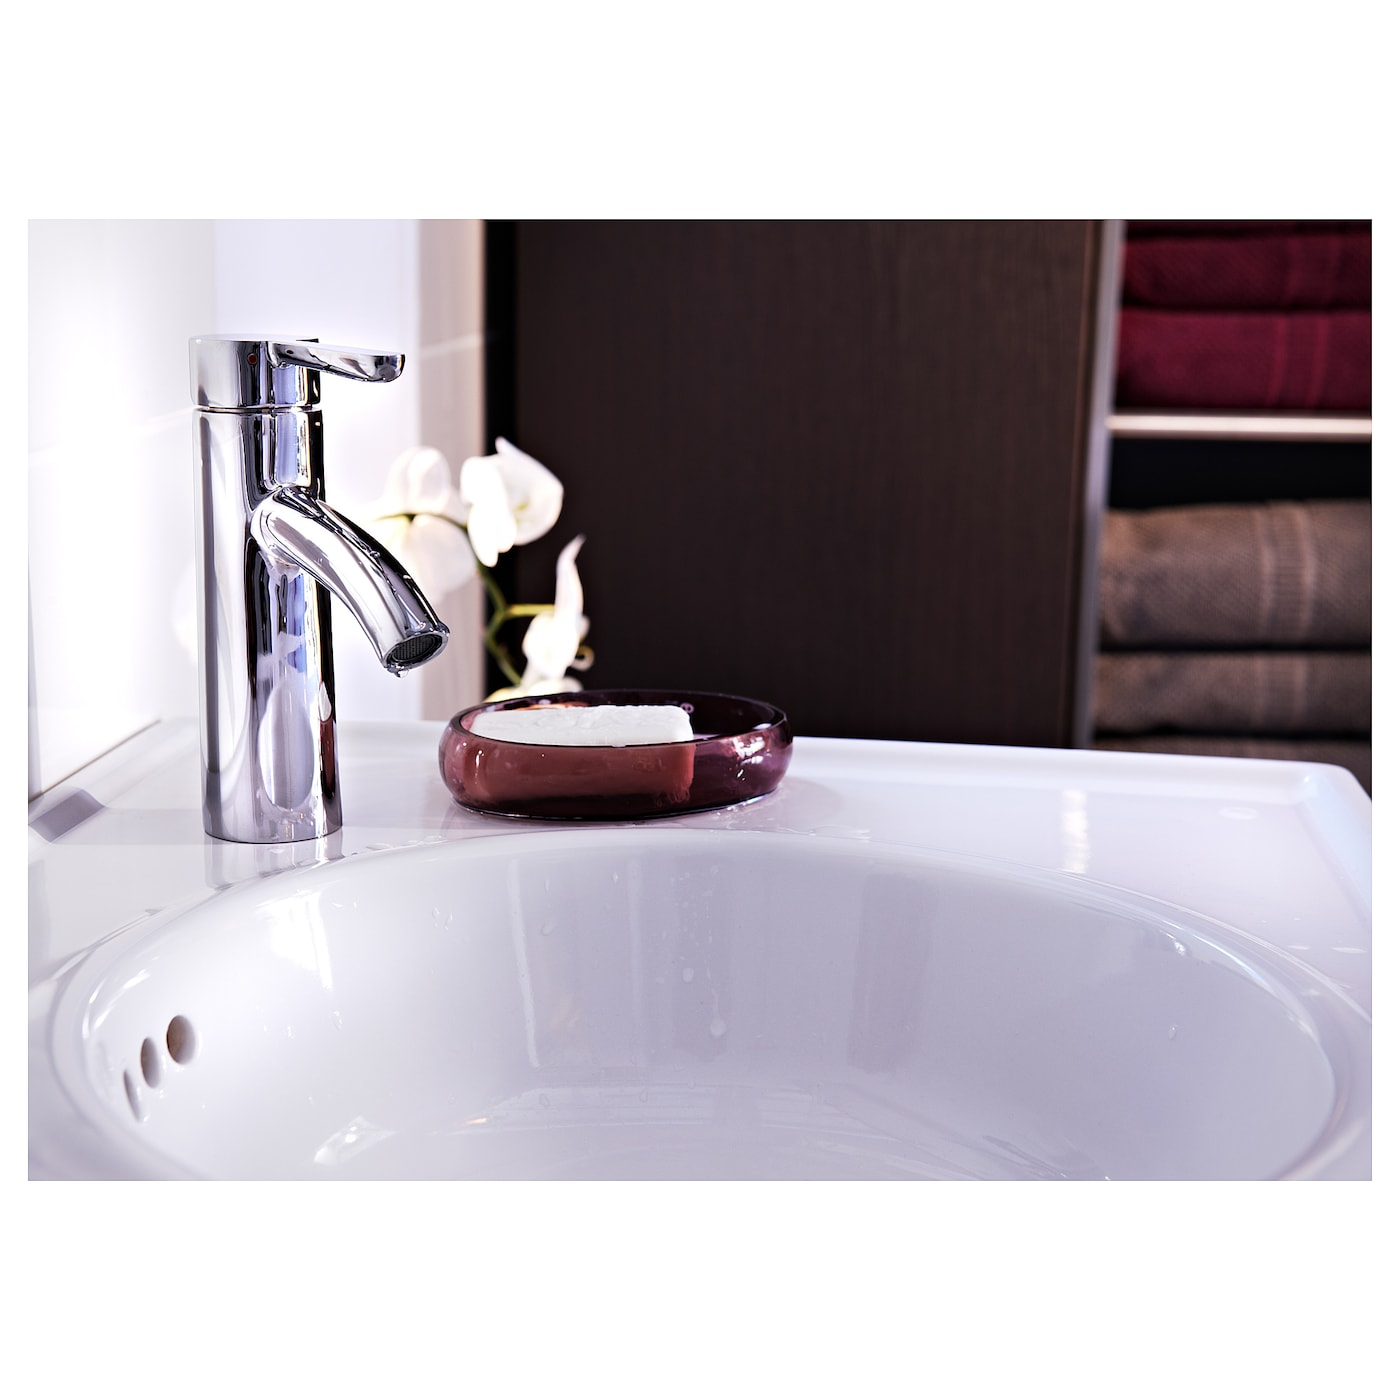 IKEA DALSKÄR wash-basin mixer tap with strainer